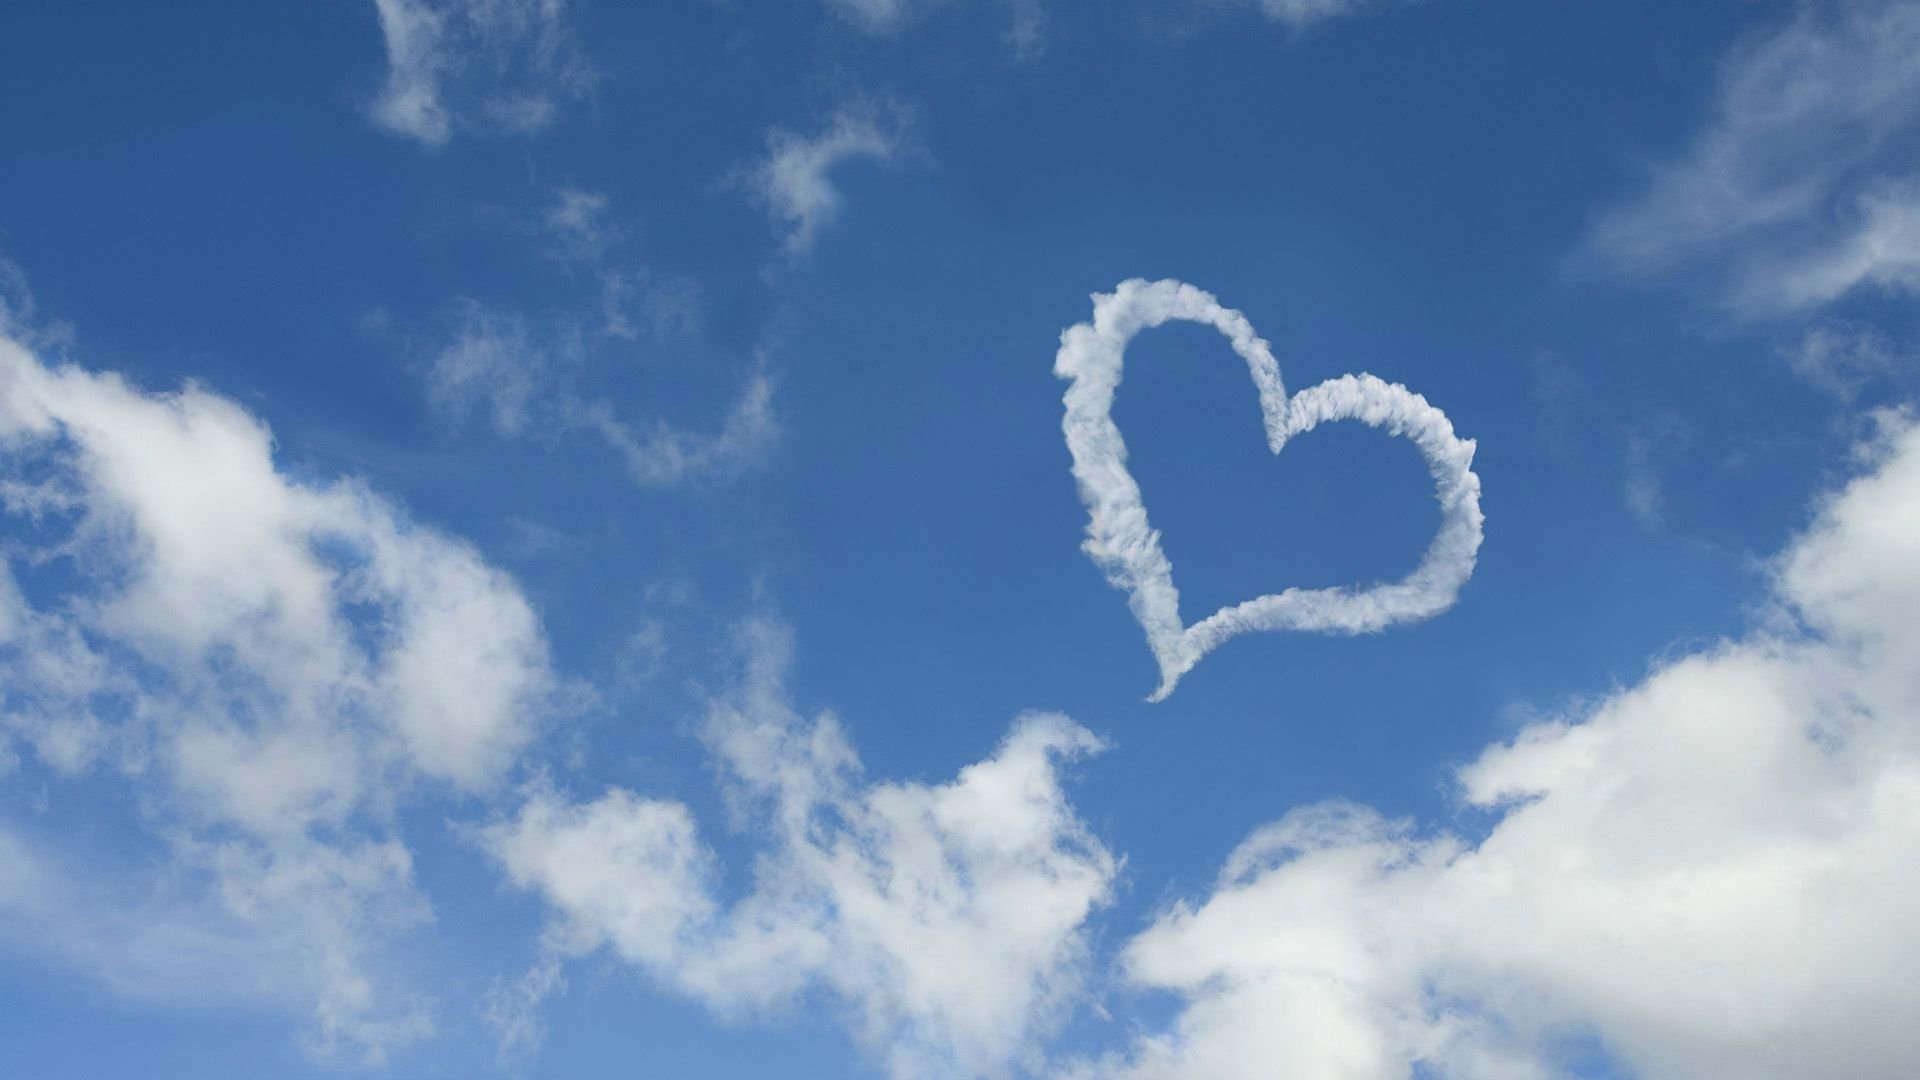 love is in the air - romantic reads | denver public library